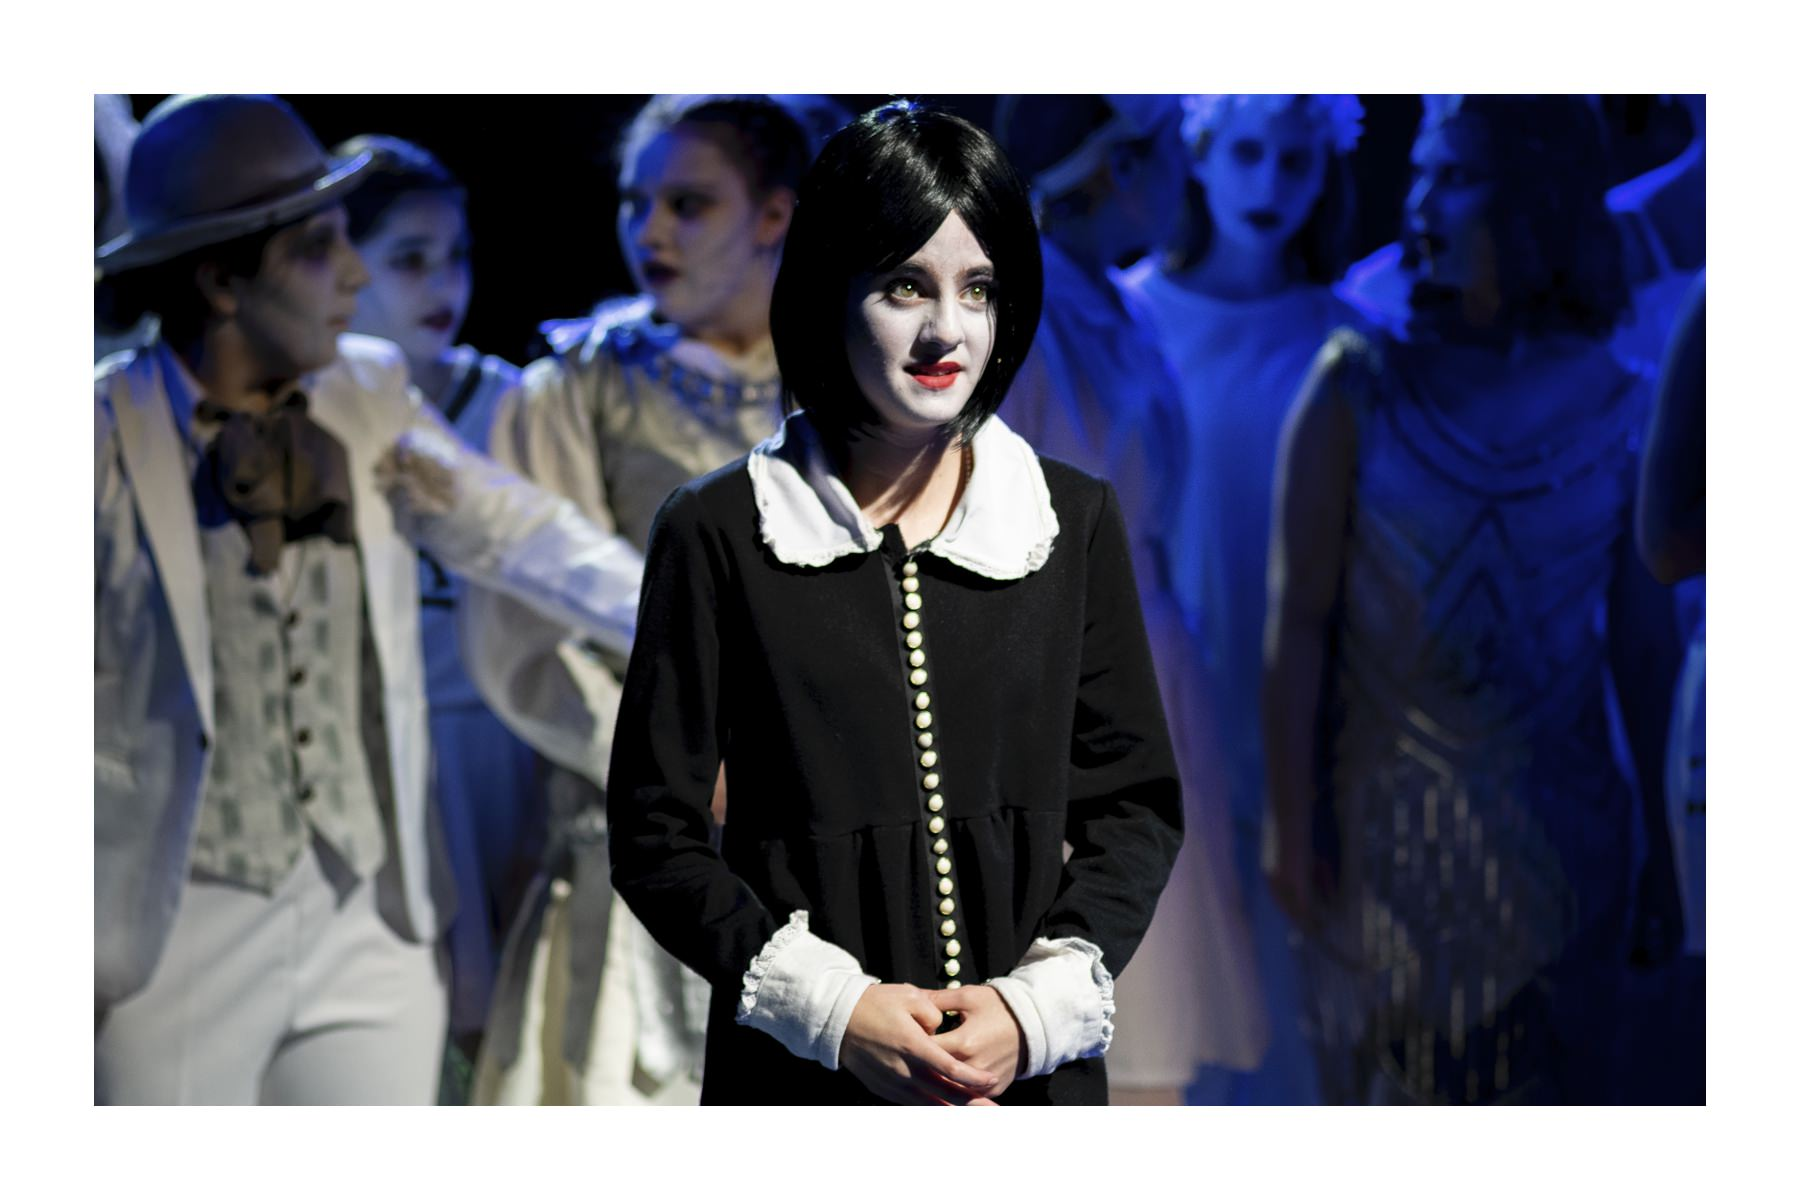 PLC Sydney - The Addams Family 2019 Photography by Christopher Hayles-0005.jpg